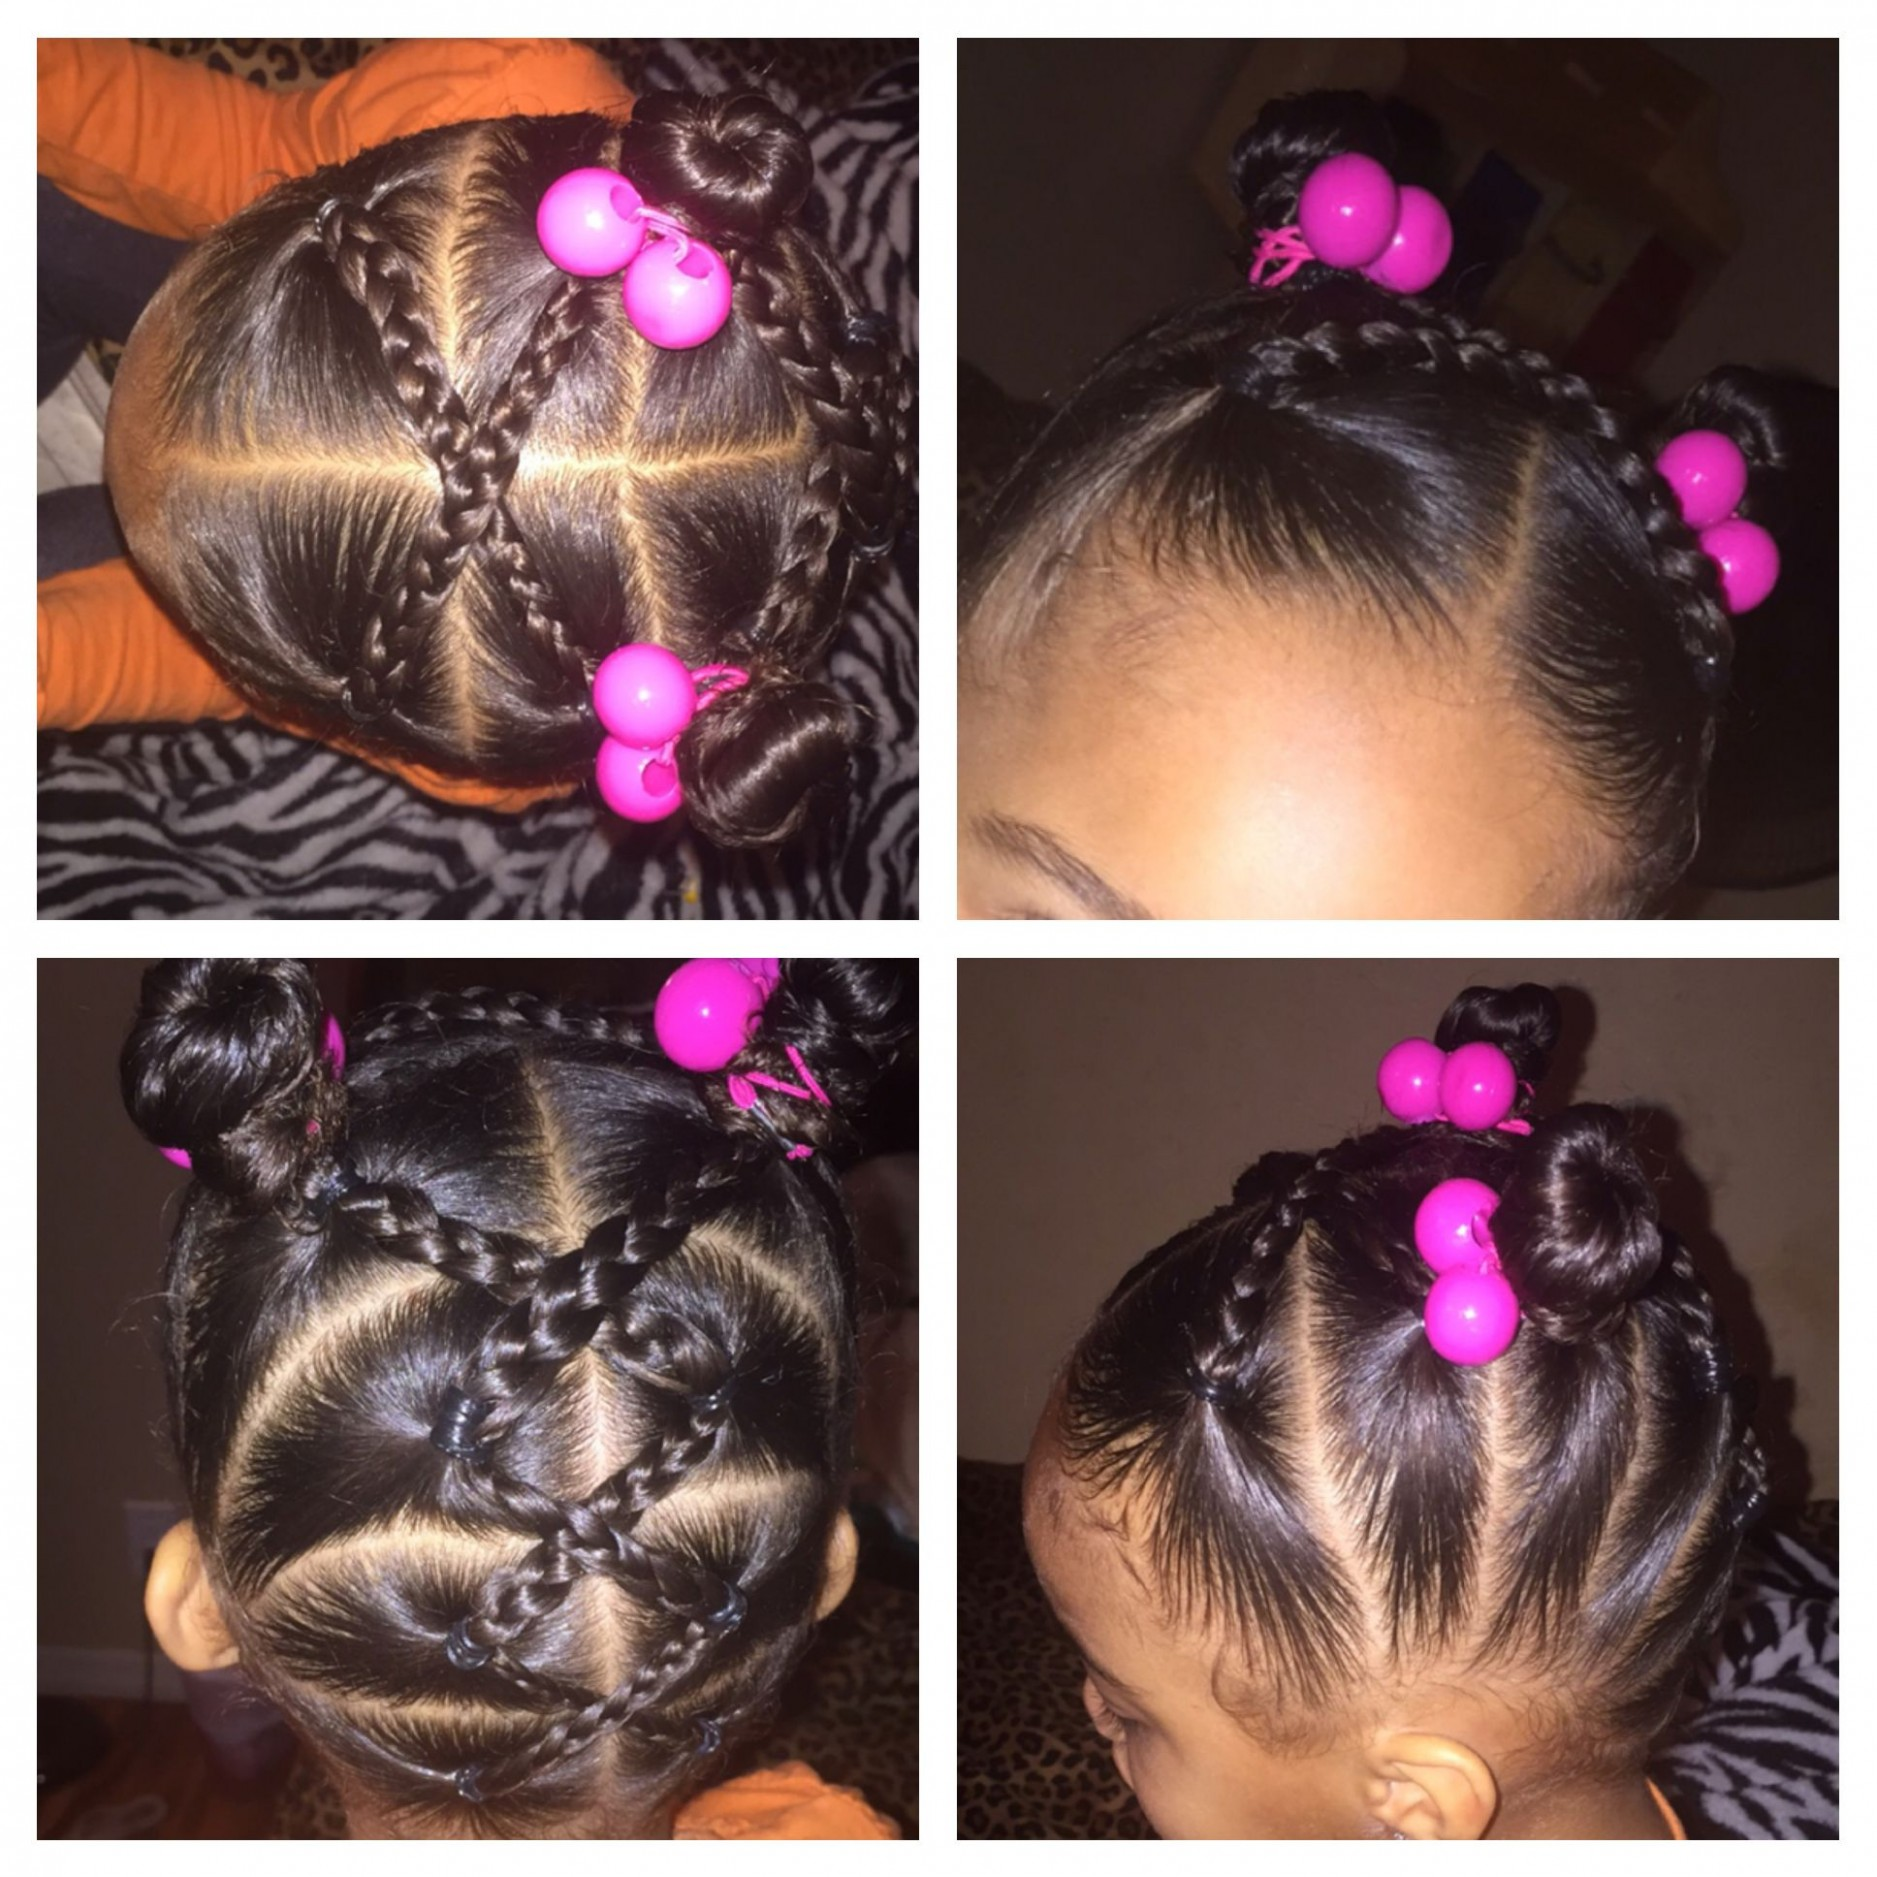 Mixed Girl Hairstyles Mixed Girl Hairstyles, Hair Styles, Lil Biracial Hairstyles For Toddlers